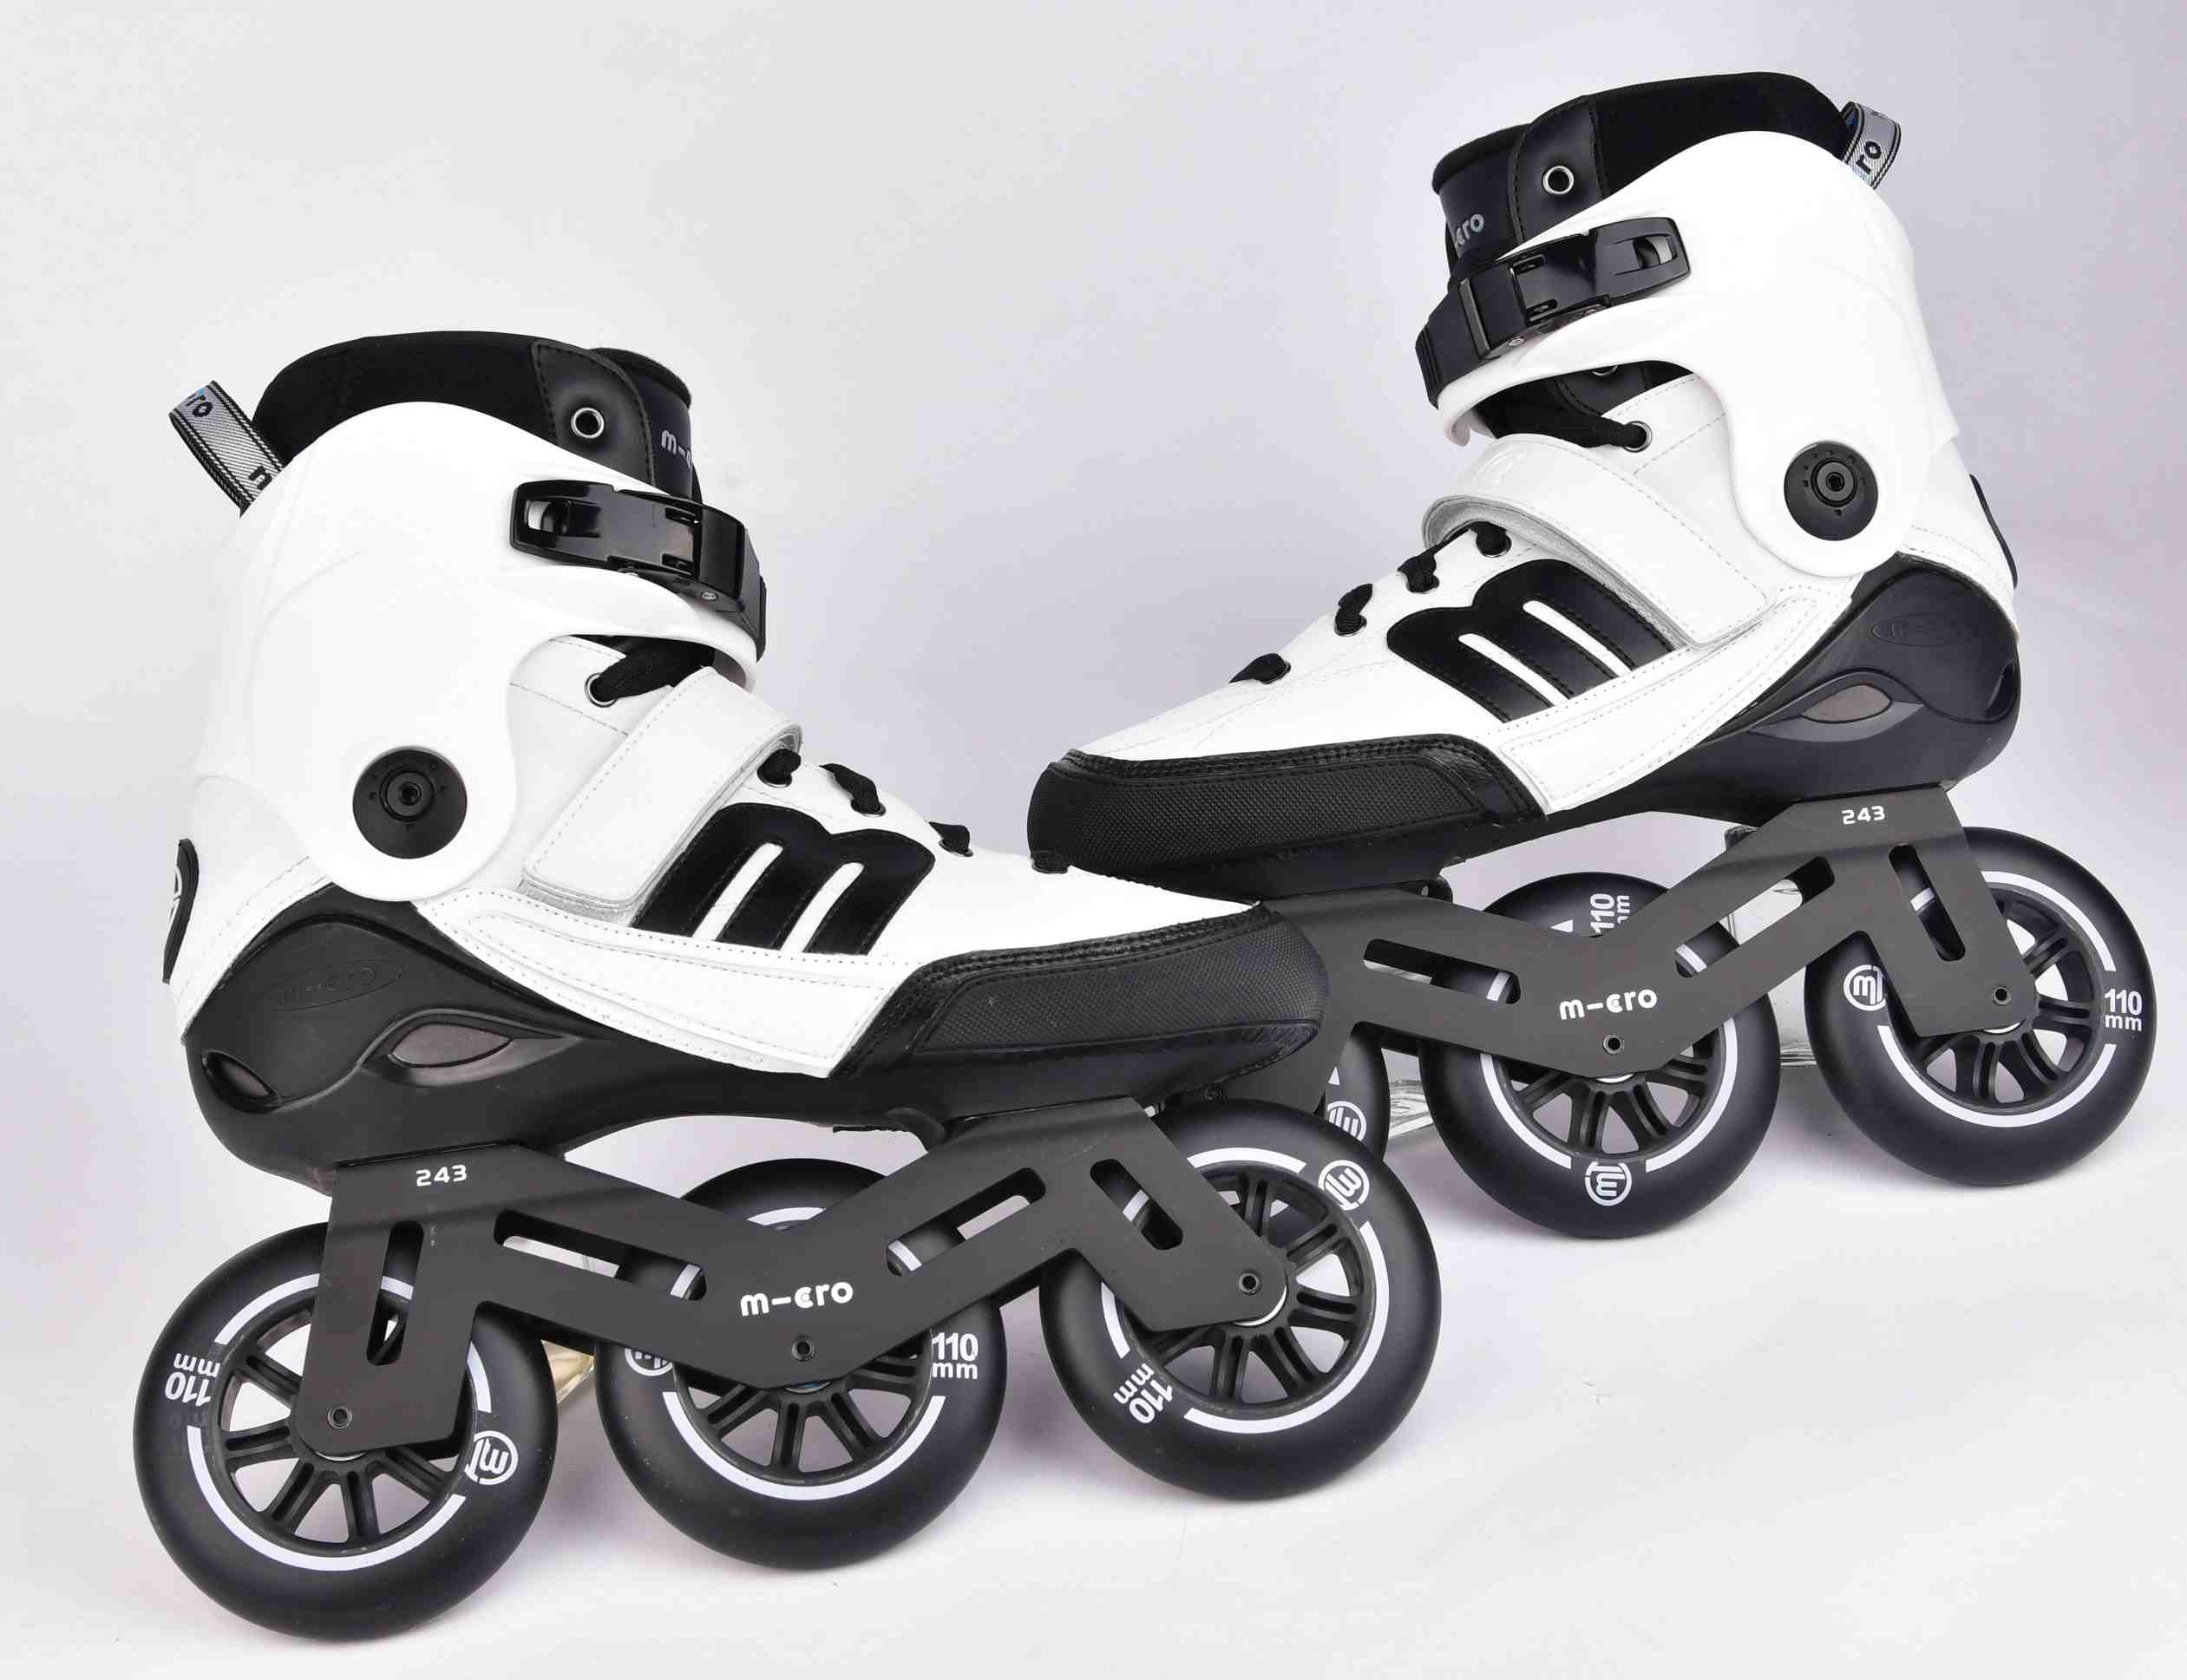 a pair of Micro white BEAT inline skates for urban use